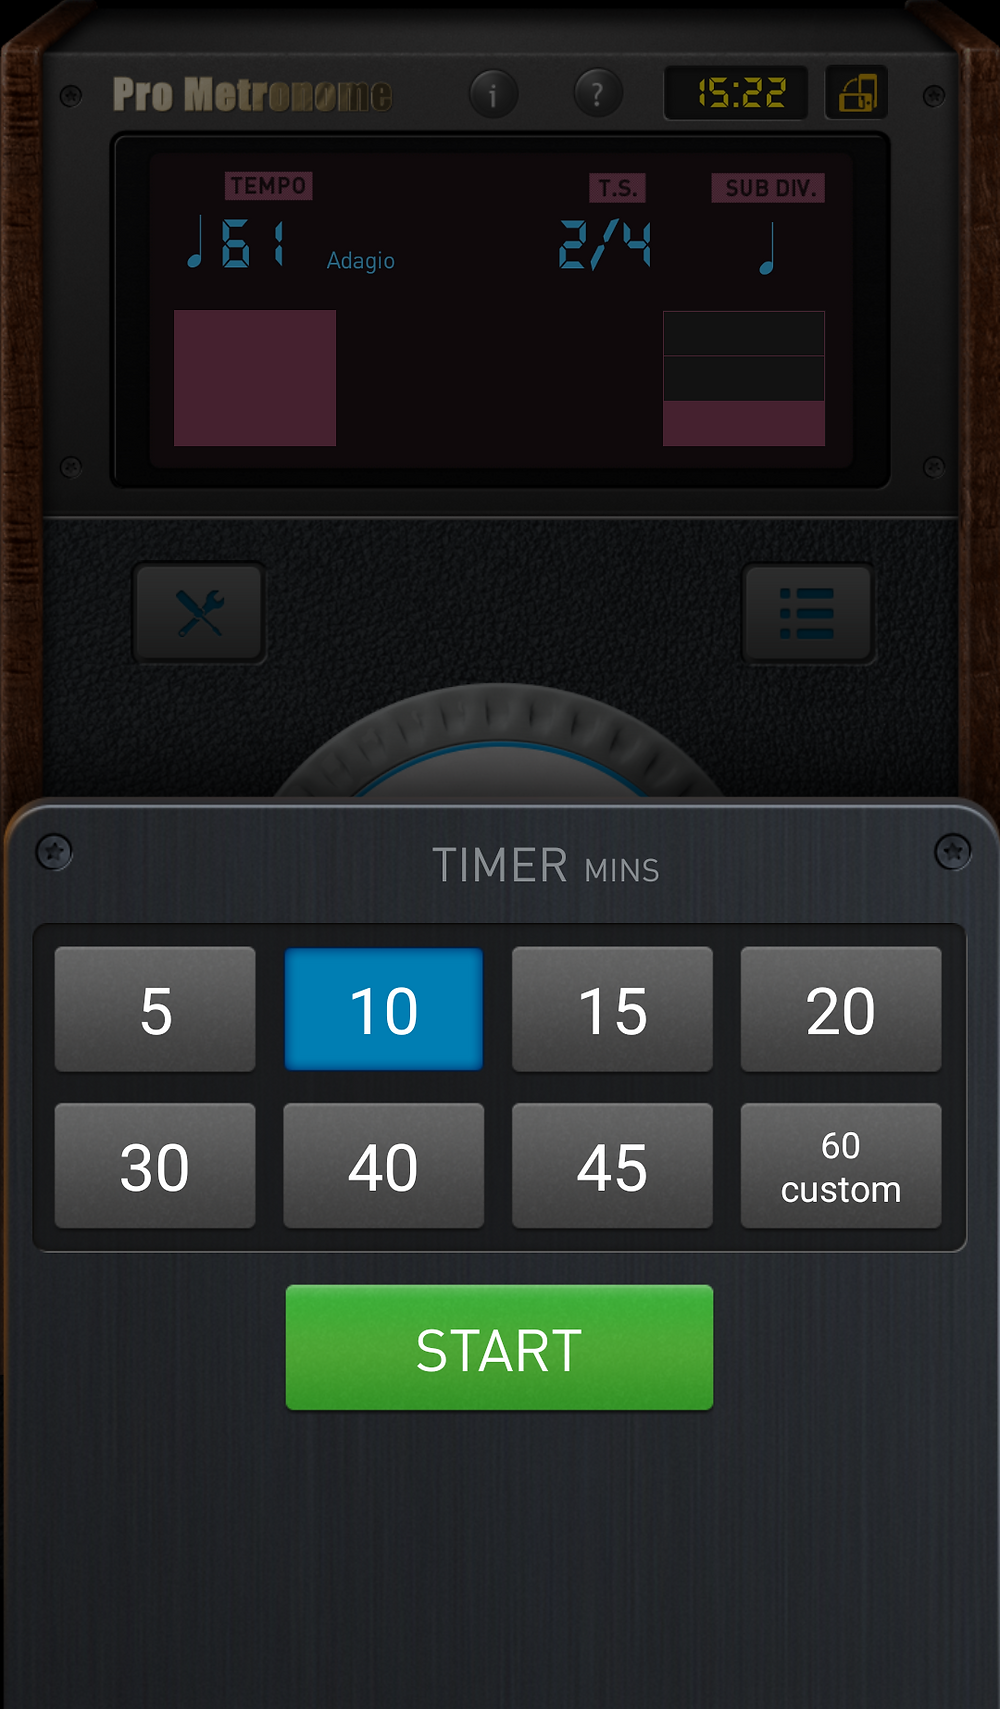 Pro Metronome has its own built-in timer